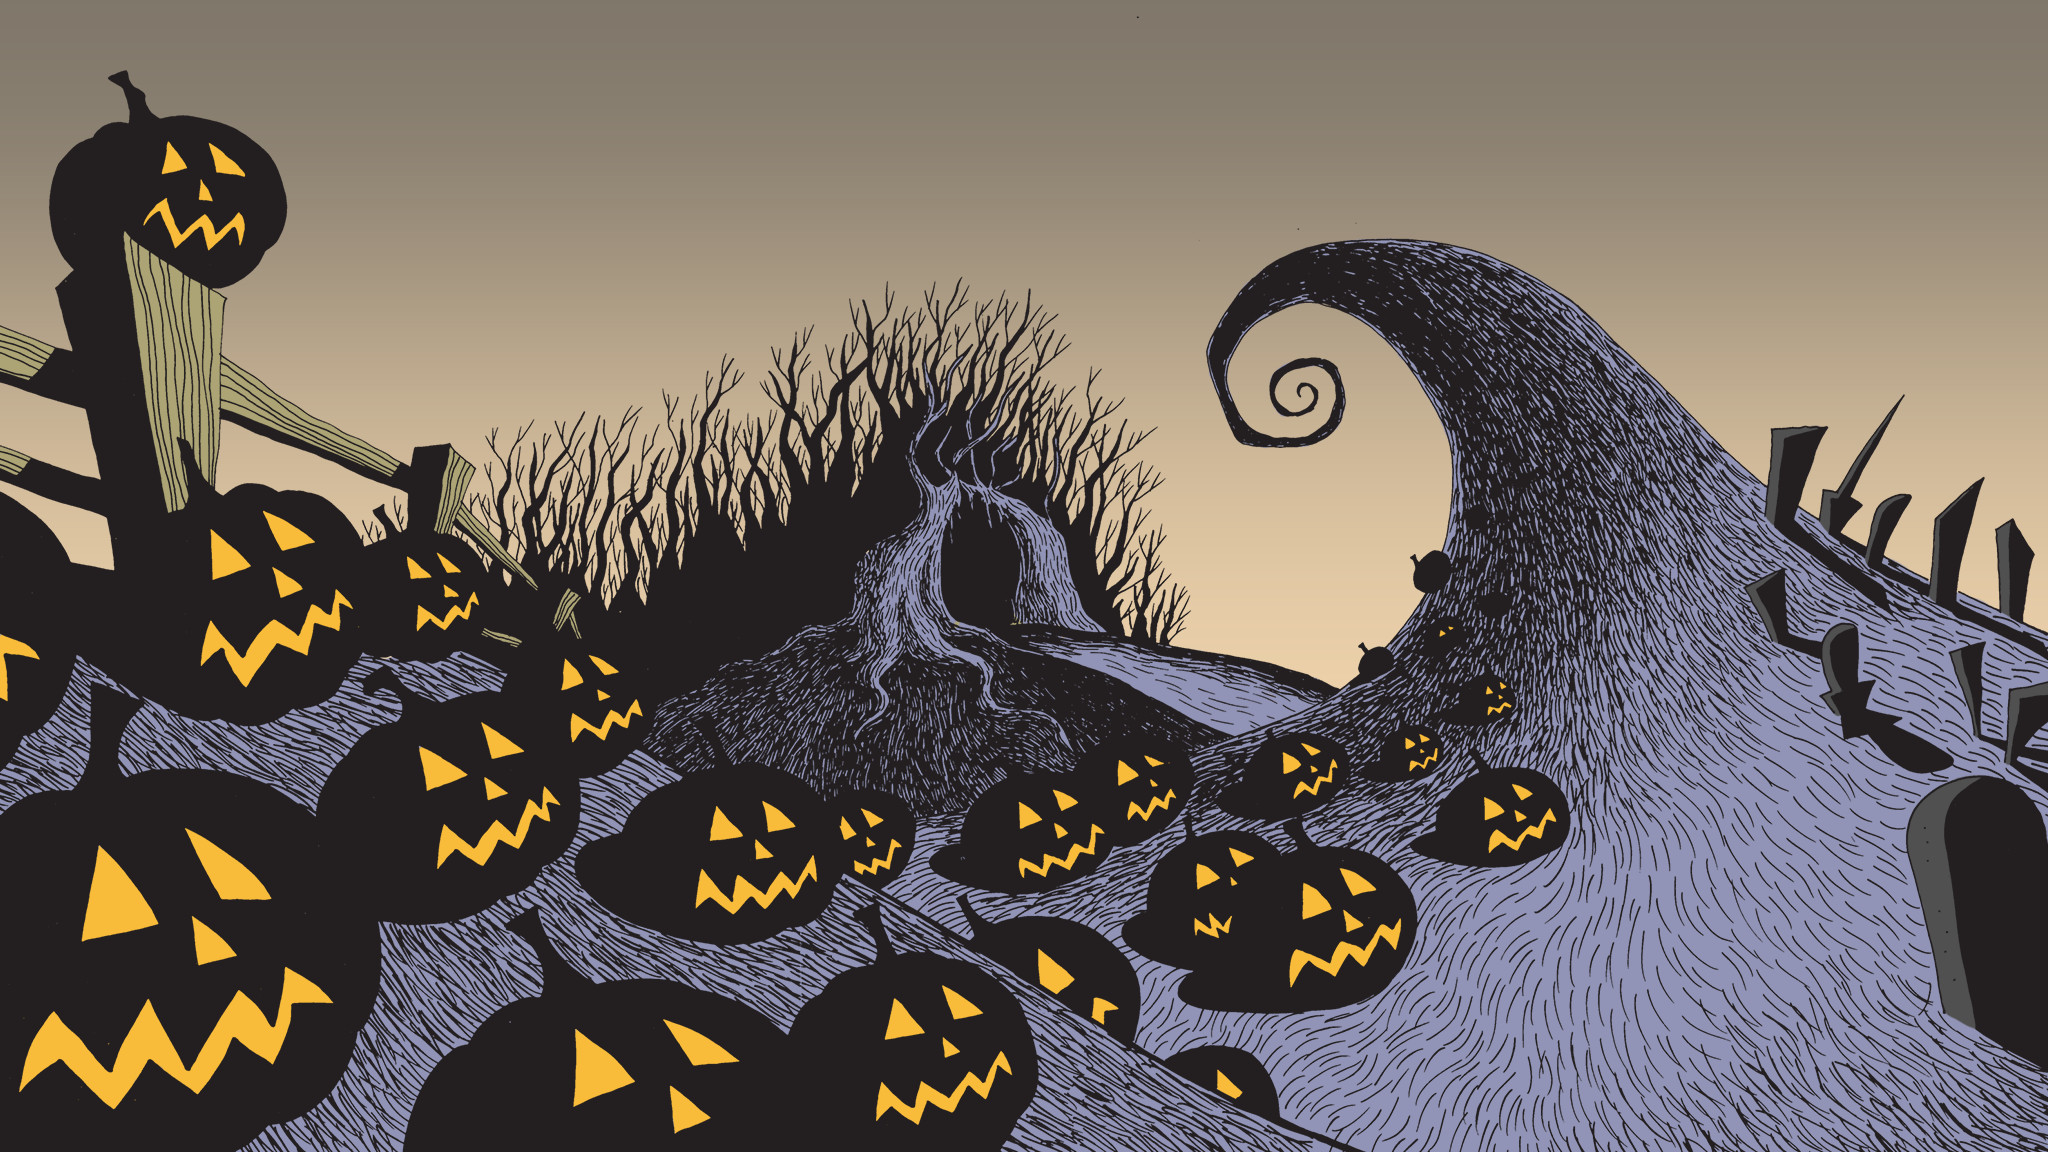 Nightmare Before Christmas Wallpaper Hd Posted By Michelle Simpson